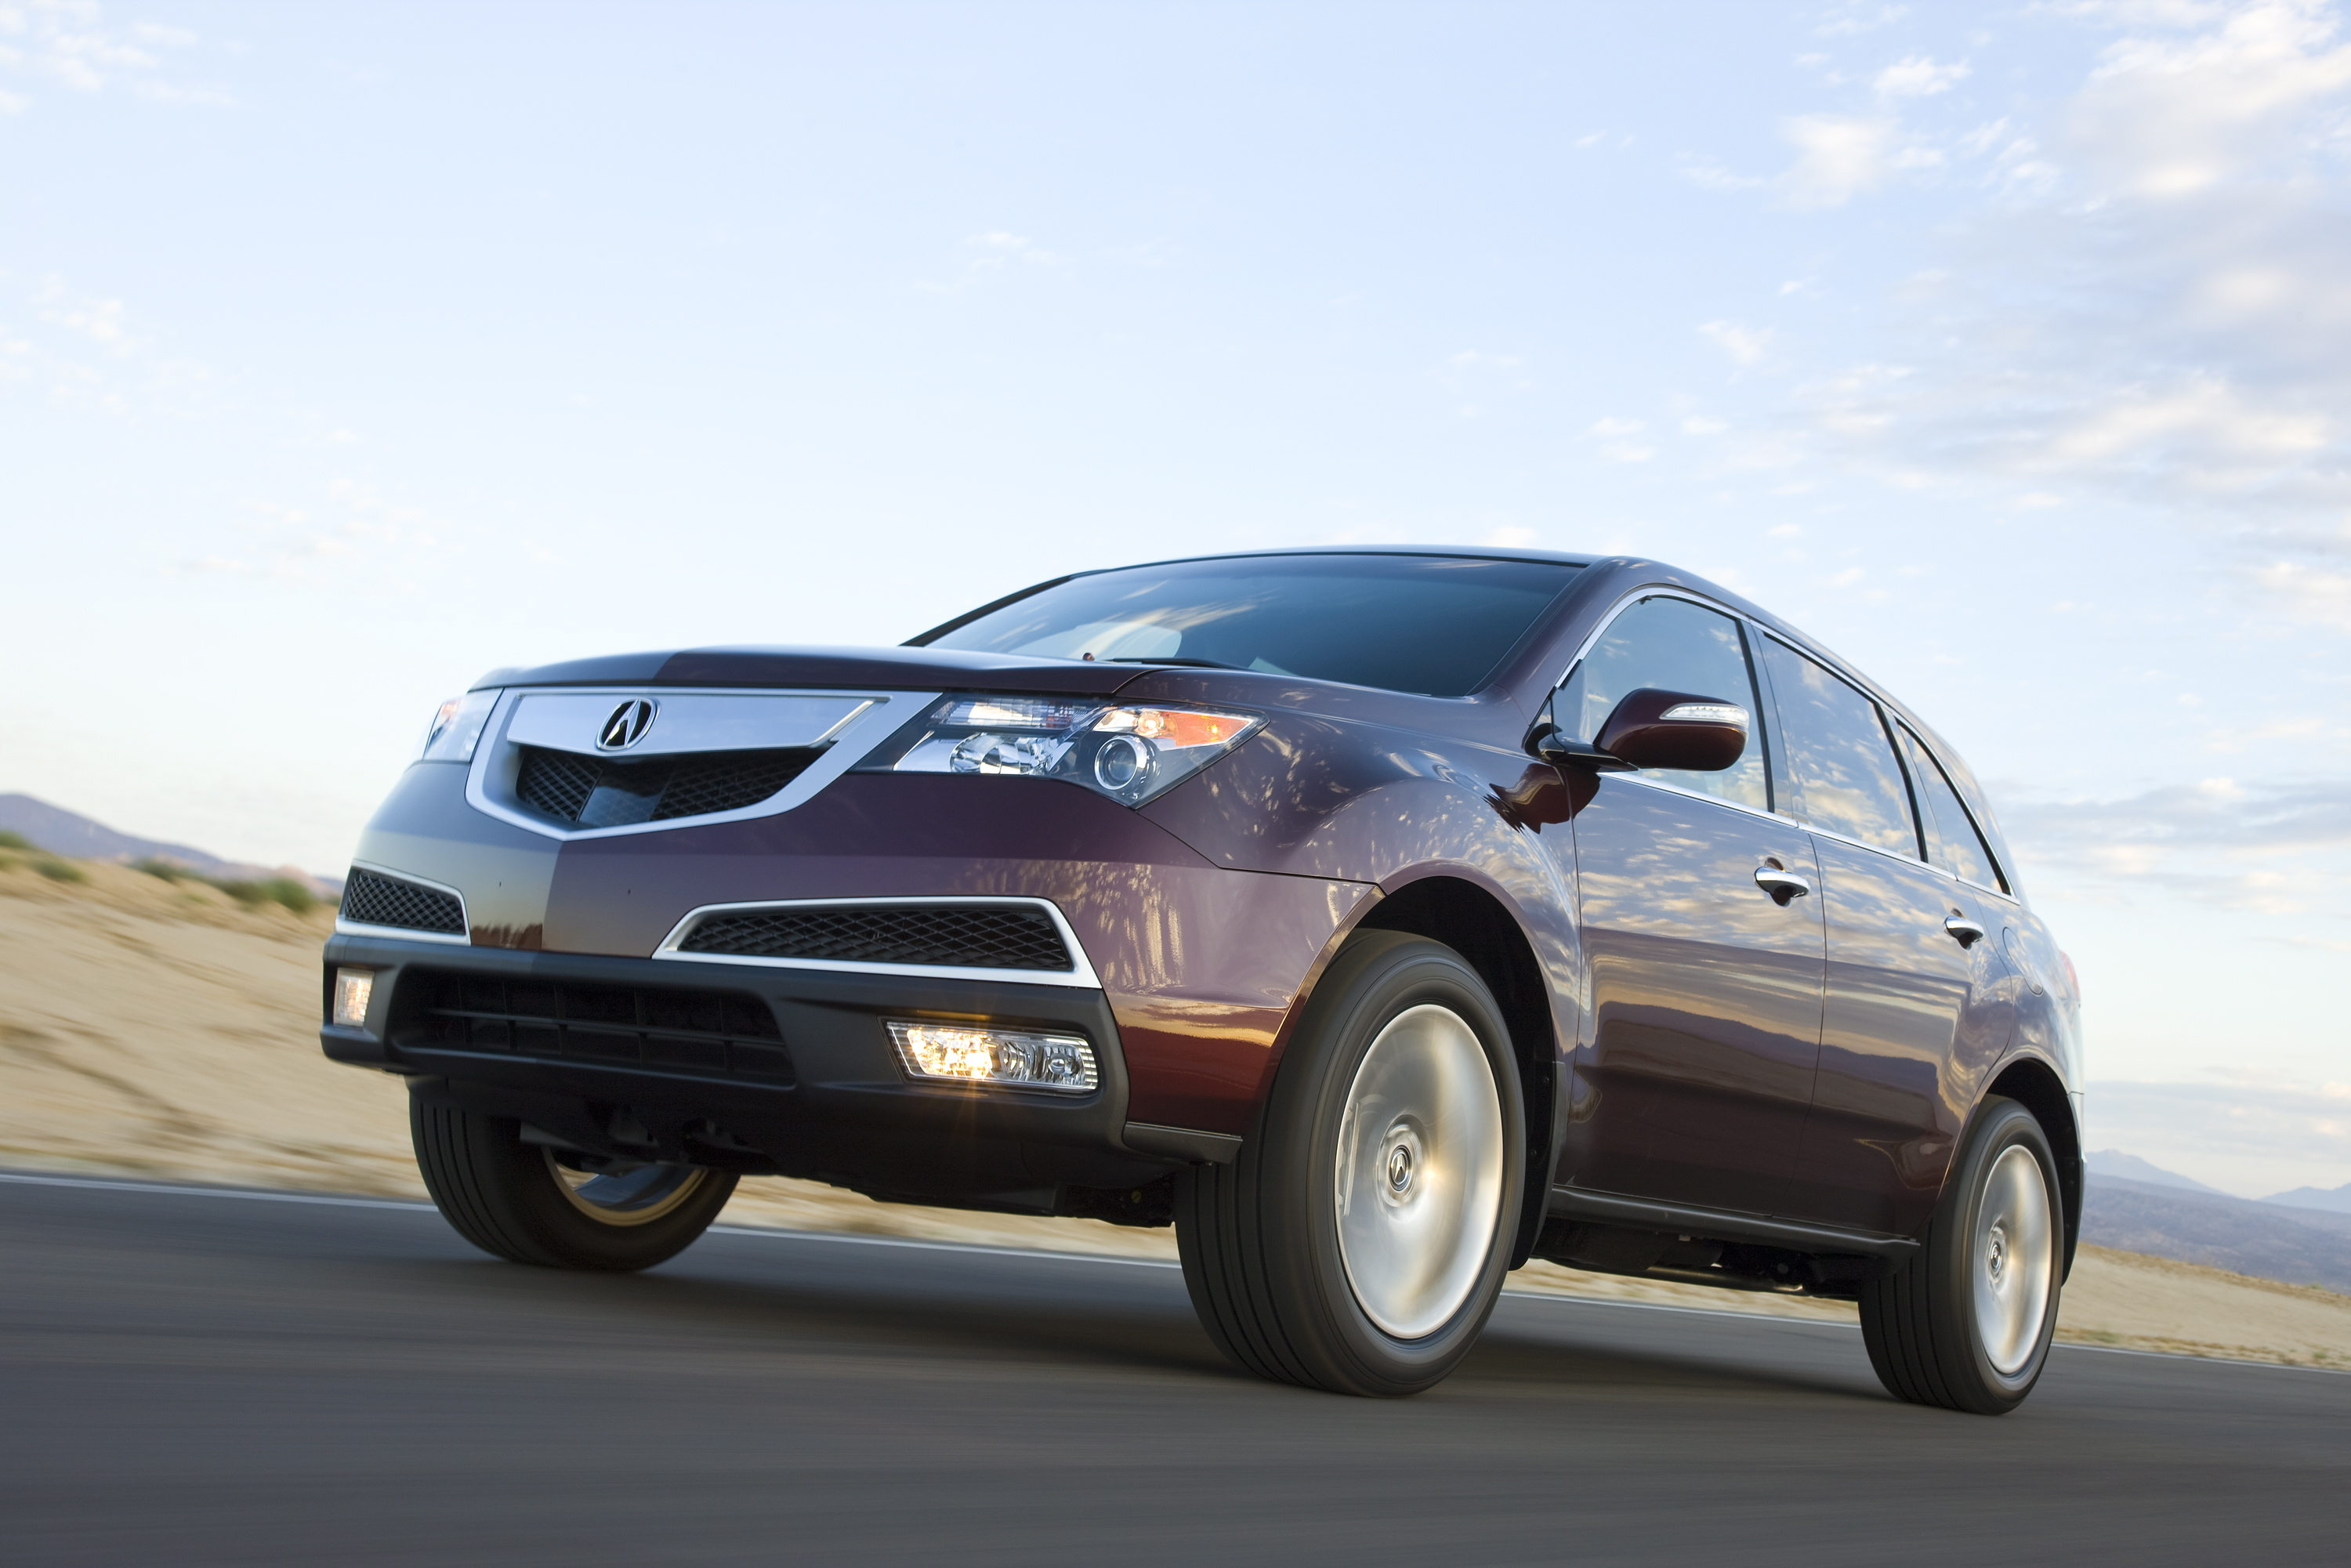 projectors mdx forum forums on glamours of touring acura suv